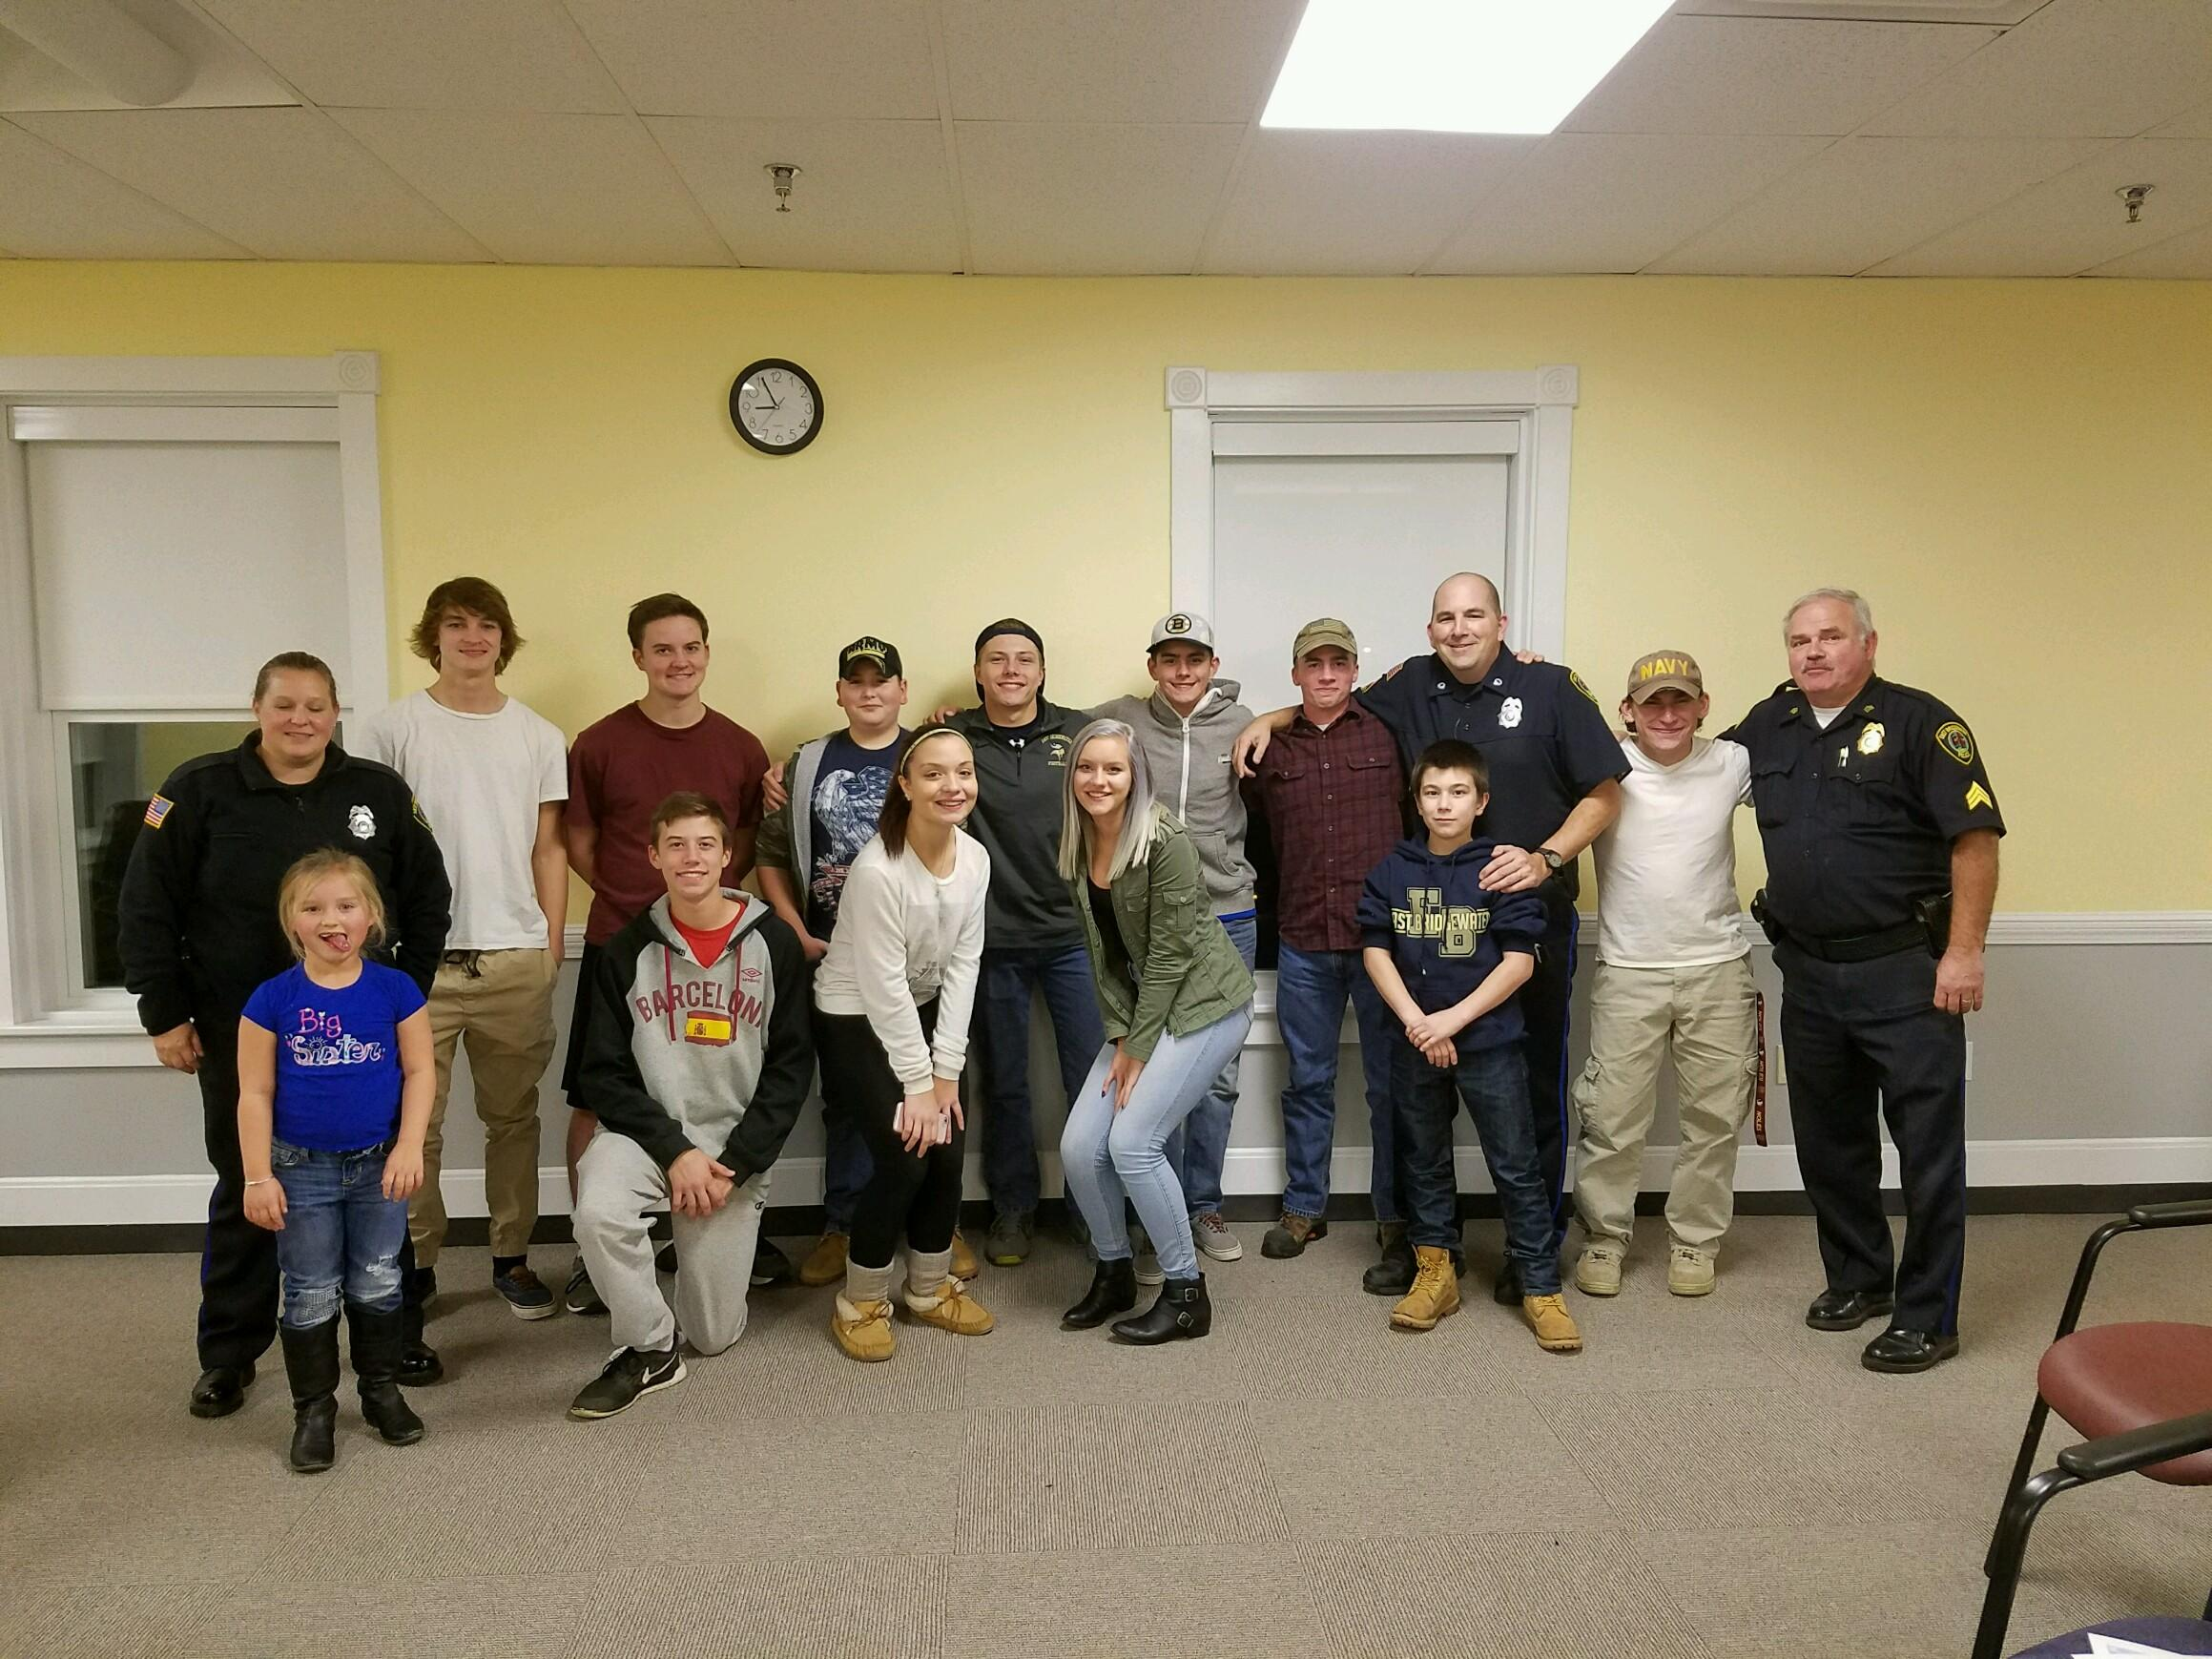 Officer Tallitha Connor, Officer Mark Harvey, and Sgt. Steven Brown with students from the East Bridgewater Citizens Police Academy. (Courtesy Photo)